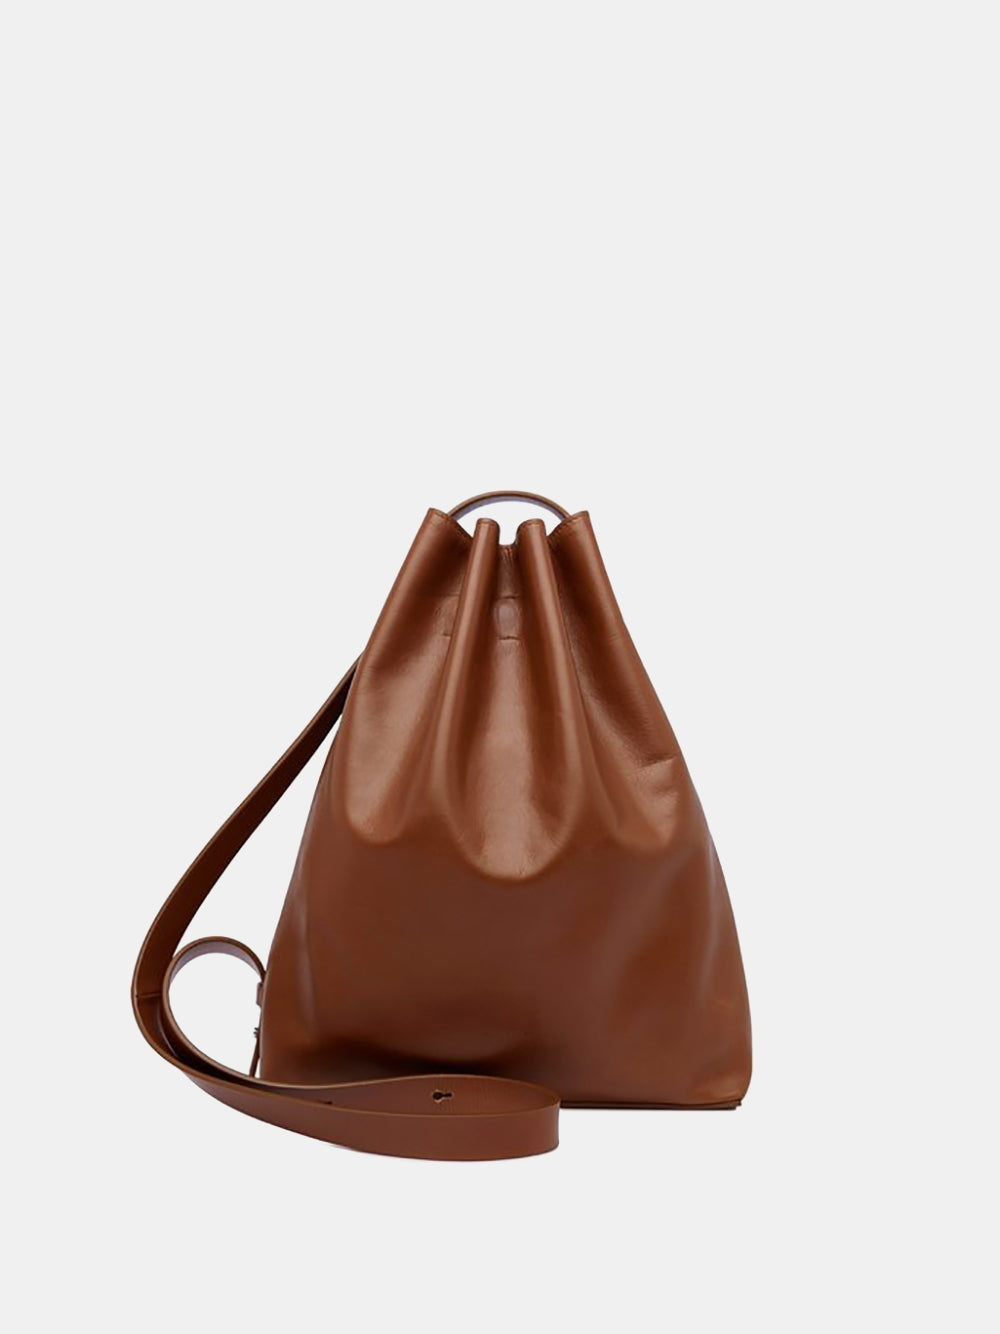 aesther ekme marin bag in cognac